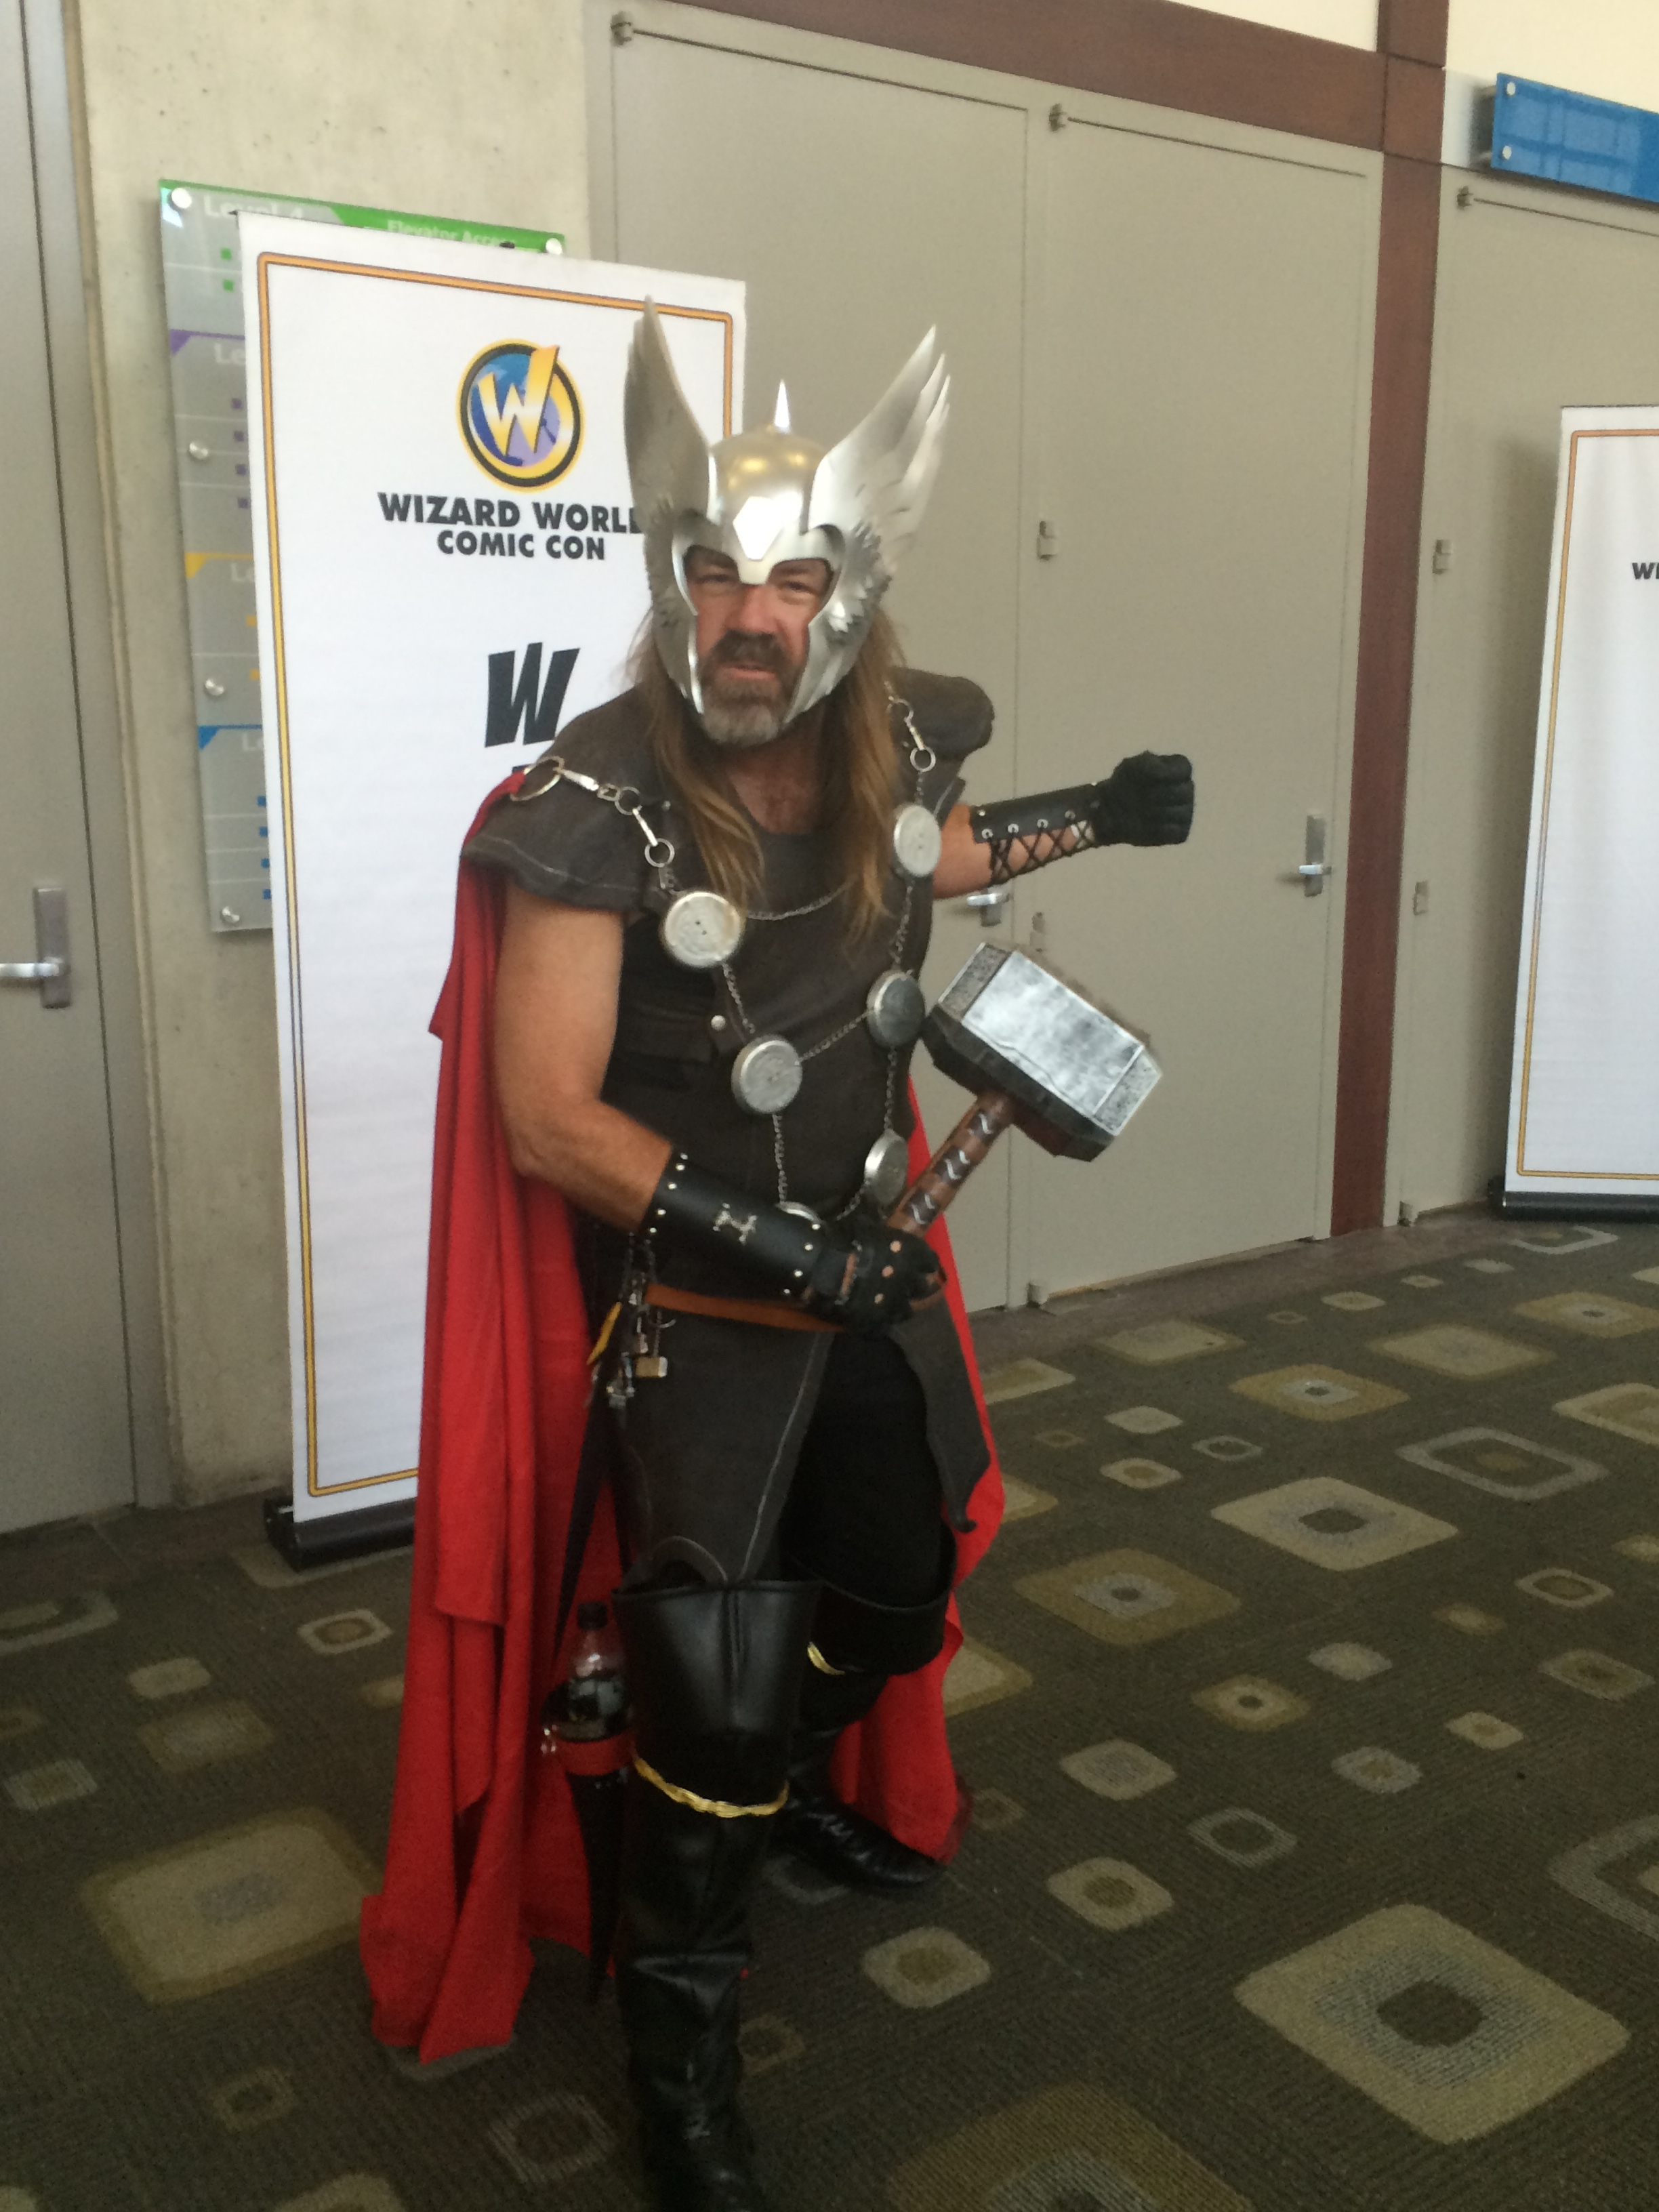 Thor at Comic Con <a href='http://natejones.aus.exprealty.com/index.php?types[]=1&types[]=2&areas[]=city:Austin&beds=0&baths=0&min=0&max=100000000&map=0&quick=1&submit=Search' title='Search Properties in Austin'>Austin</a> 2016